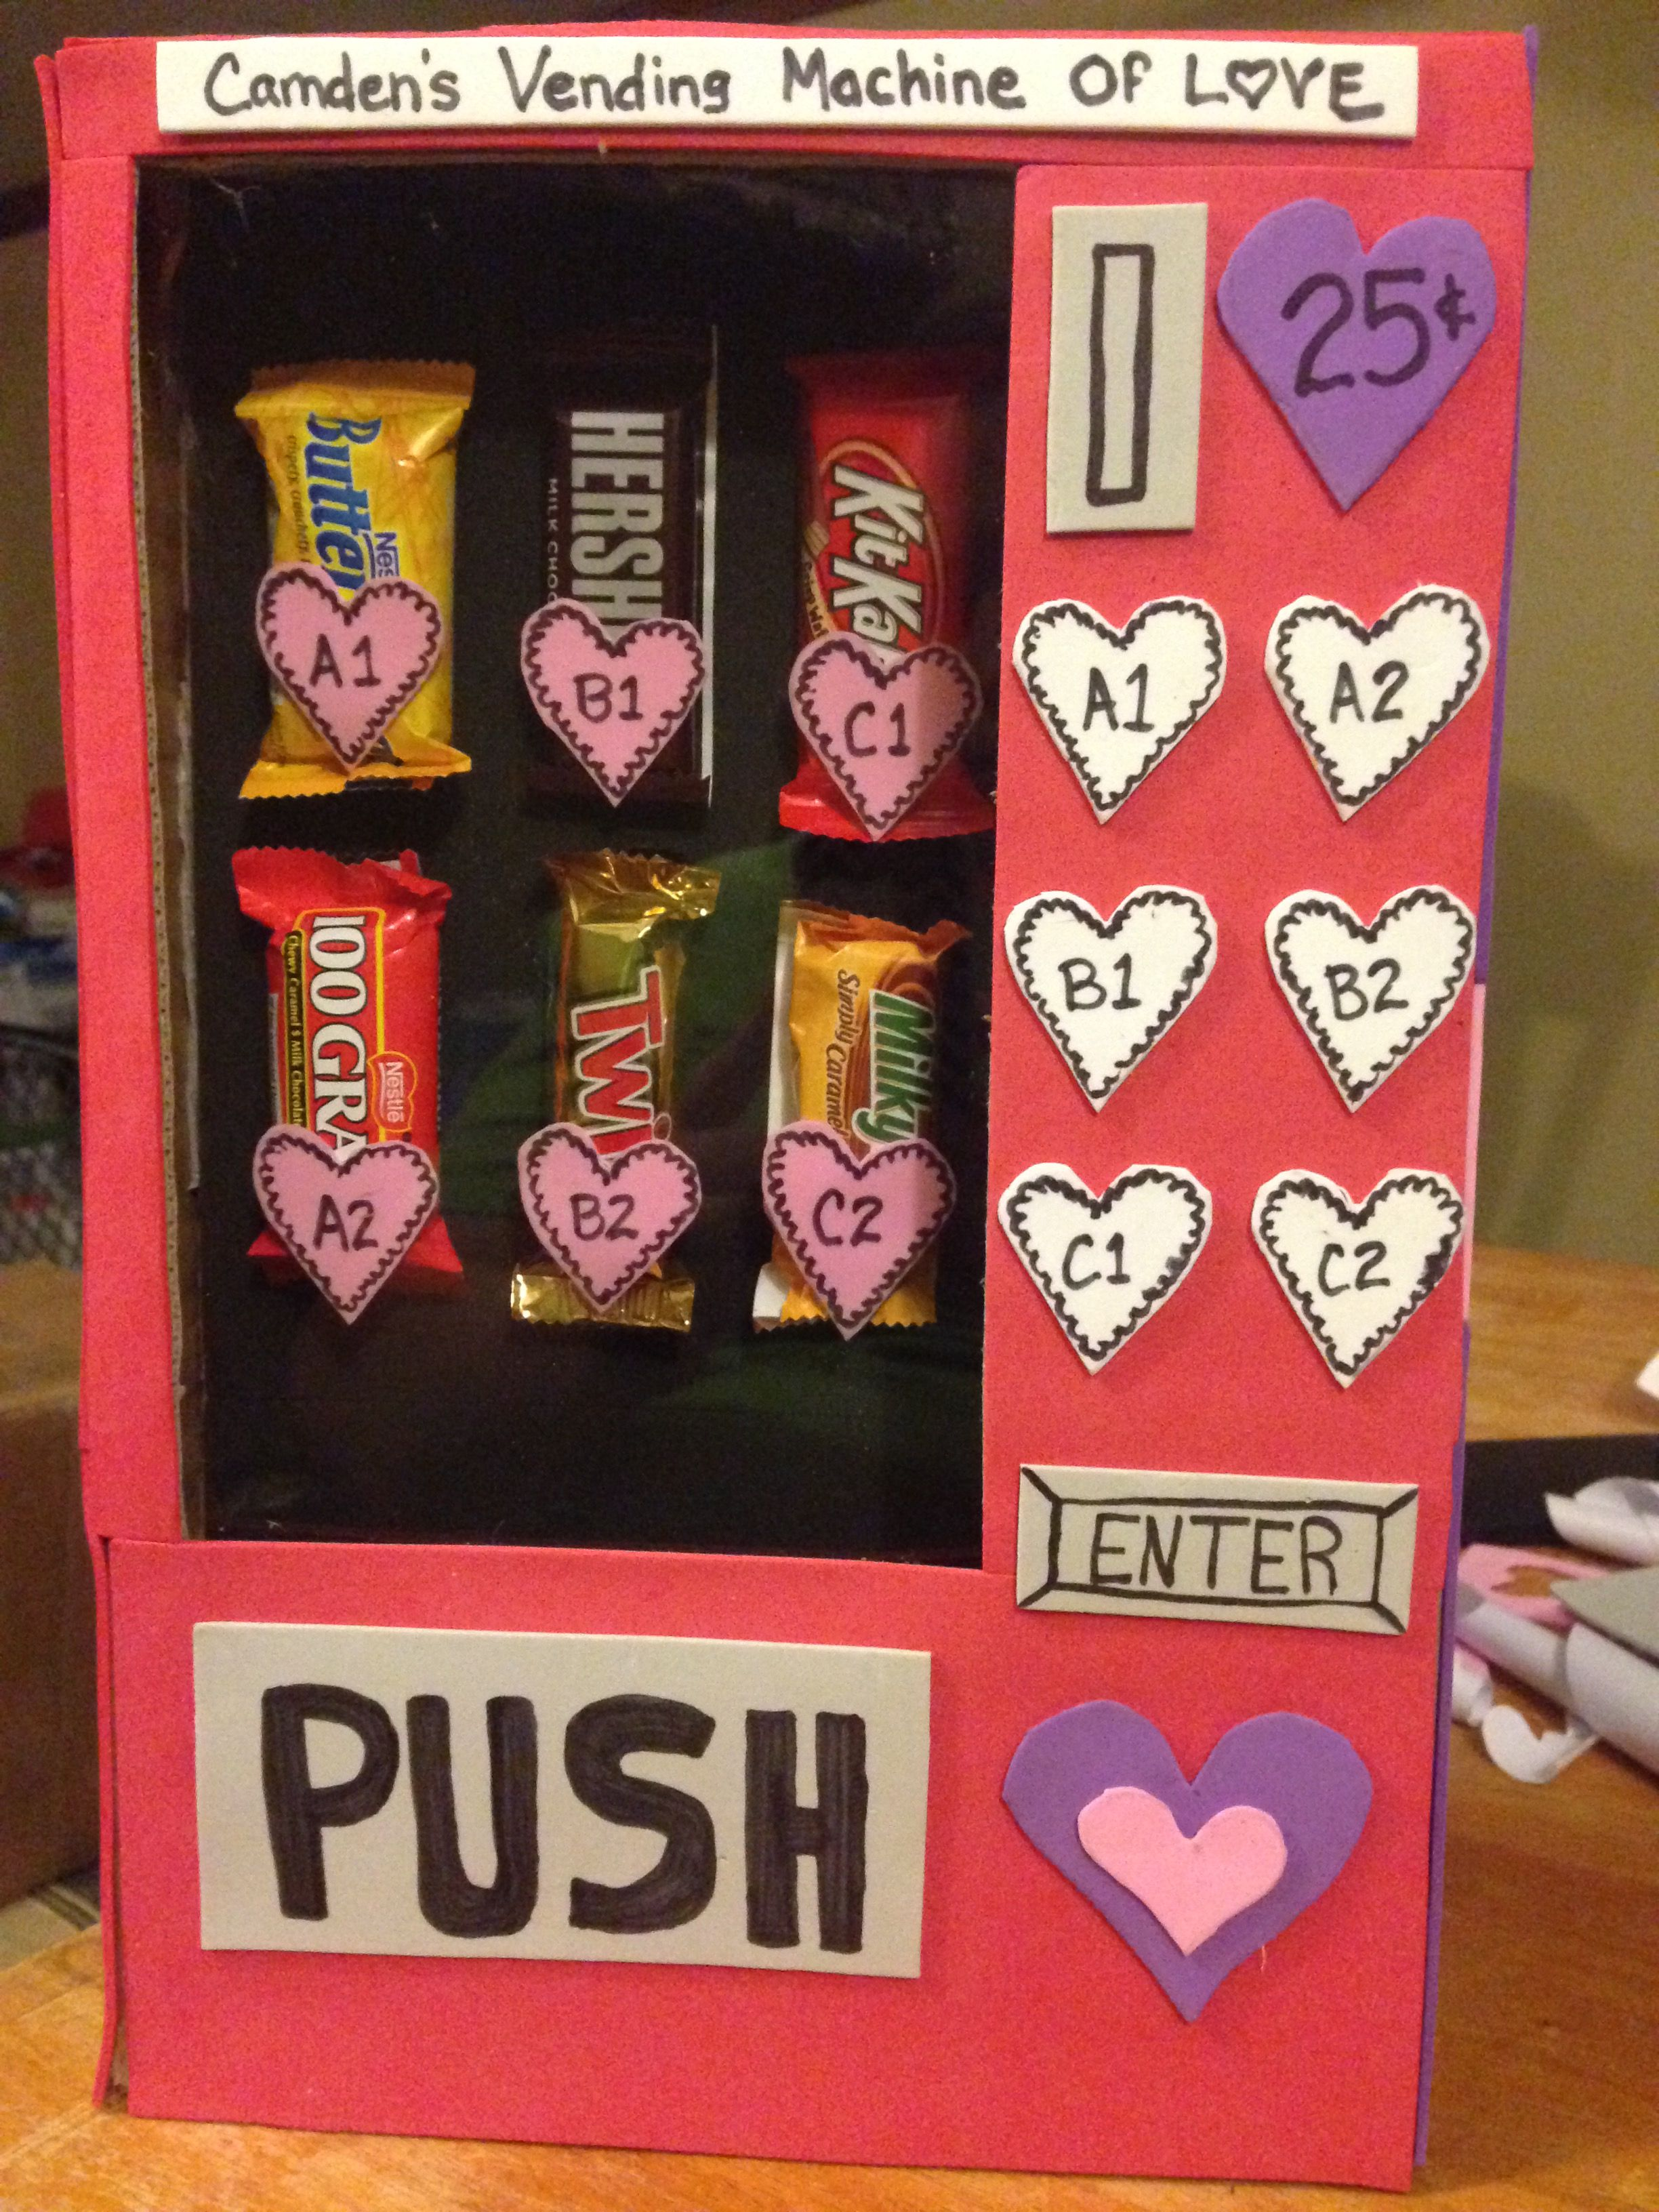 Valentine Vending Machine Box Shoe Plexigl For Insert L Stick Foam Cardboard With Candy Bars Hot Glued On Variations Are Endless